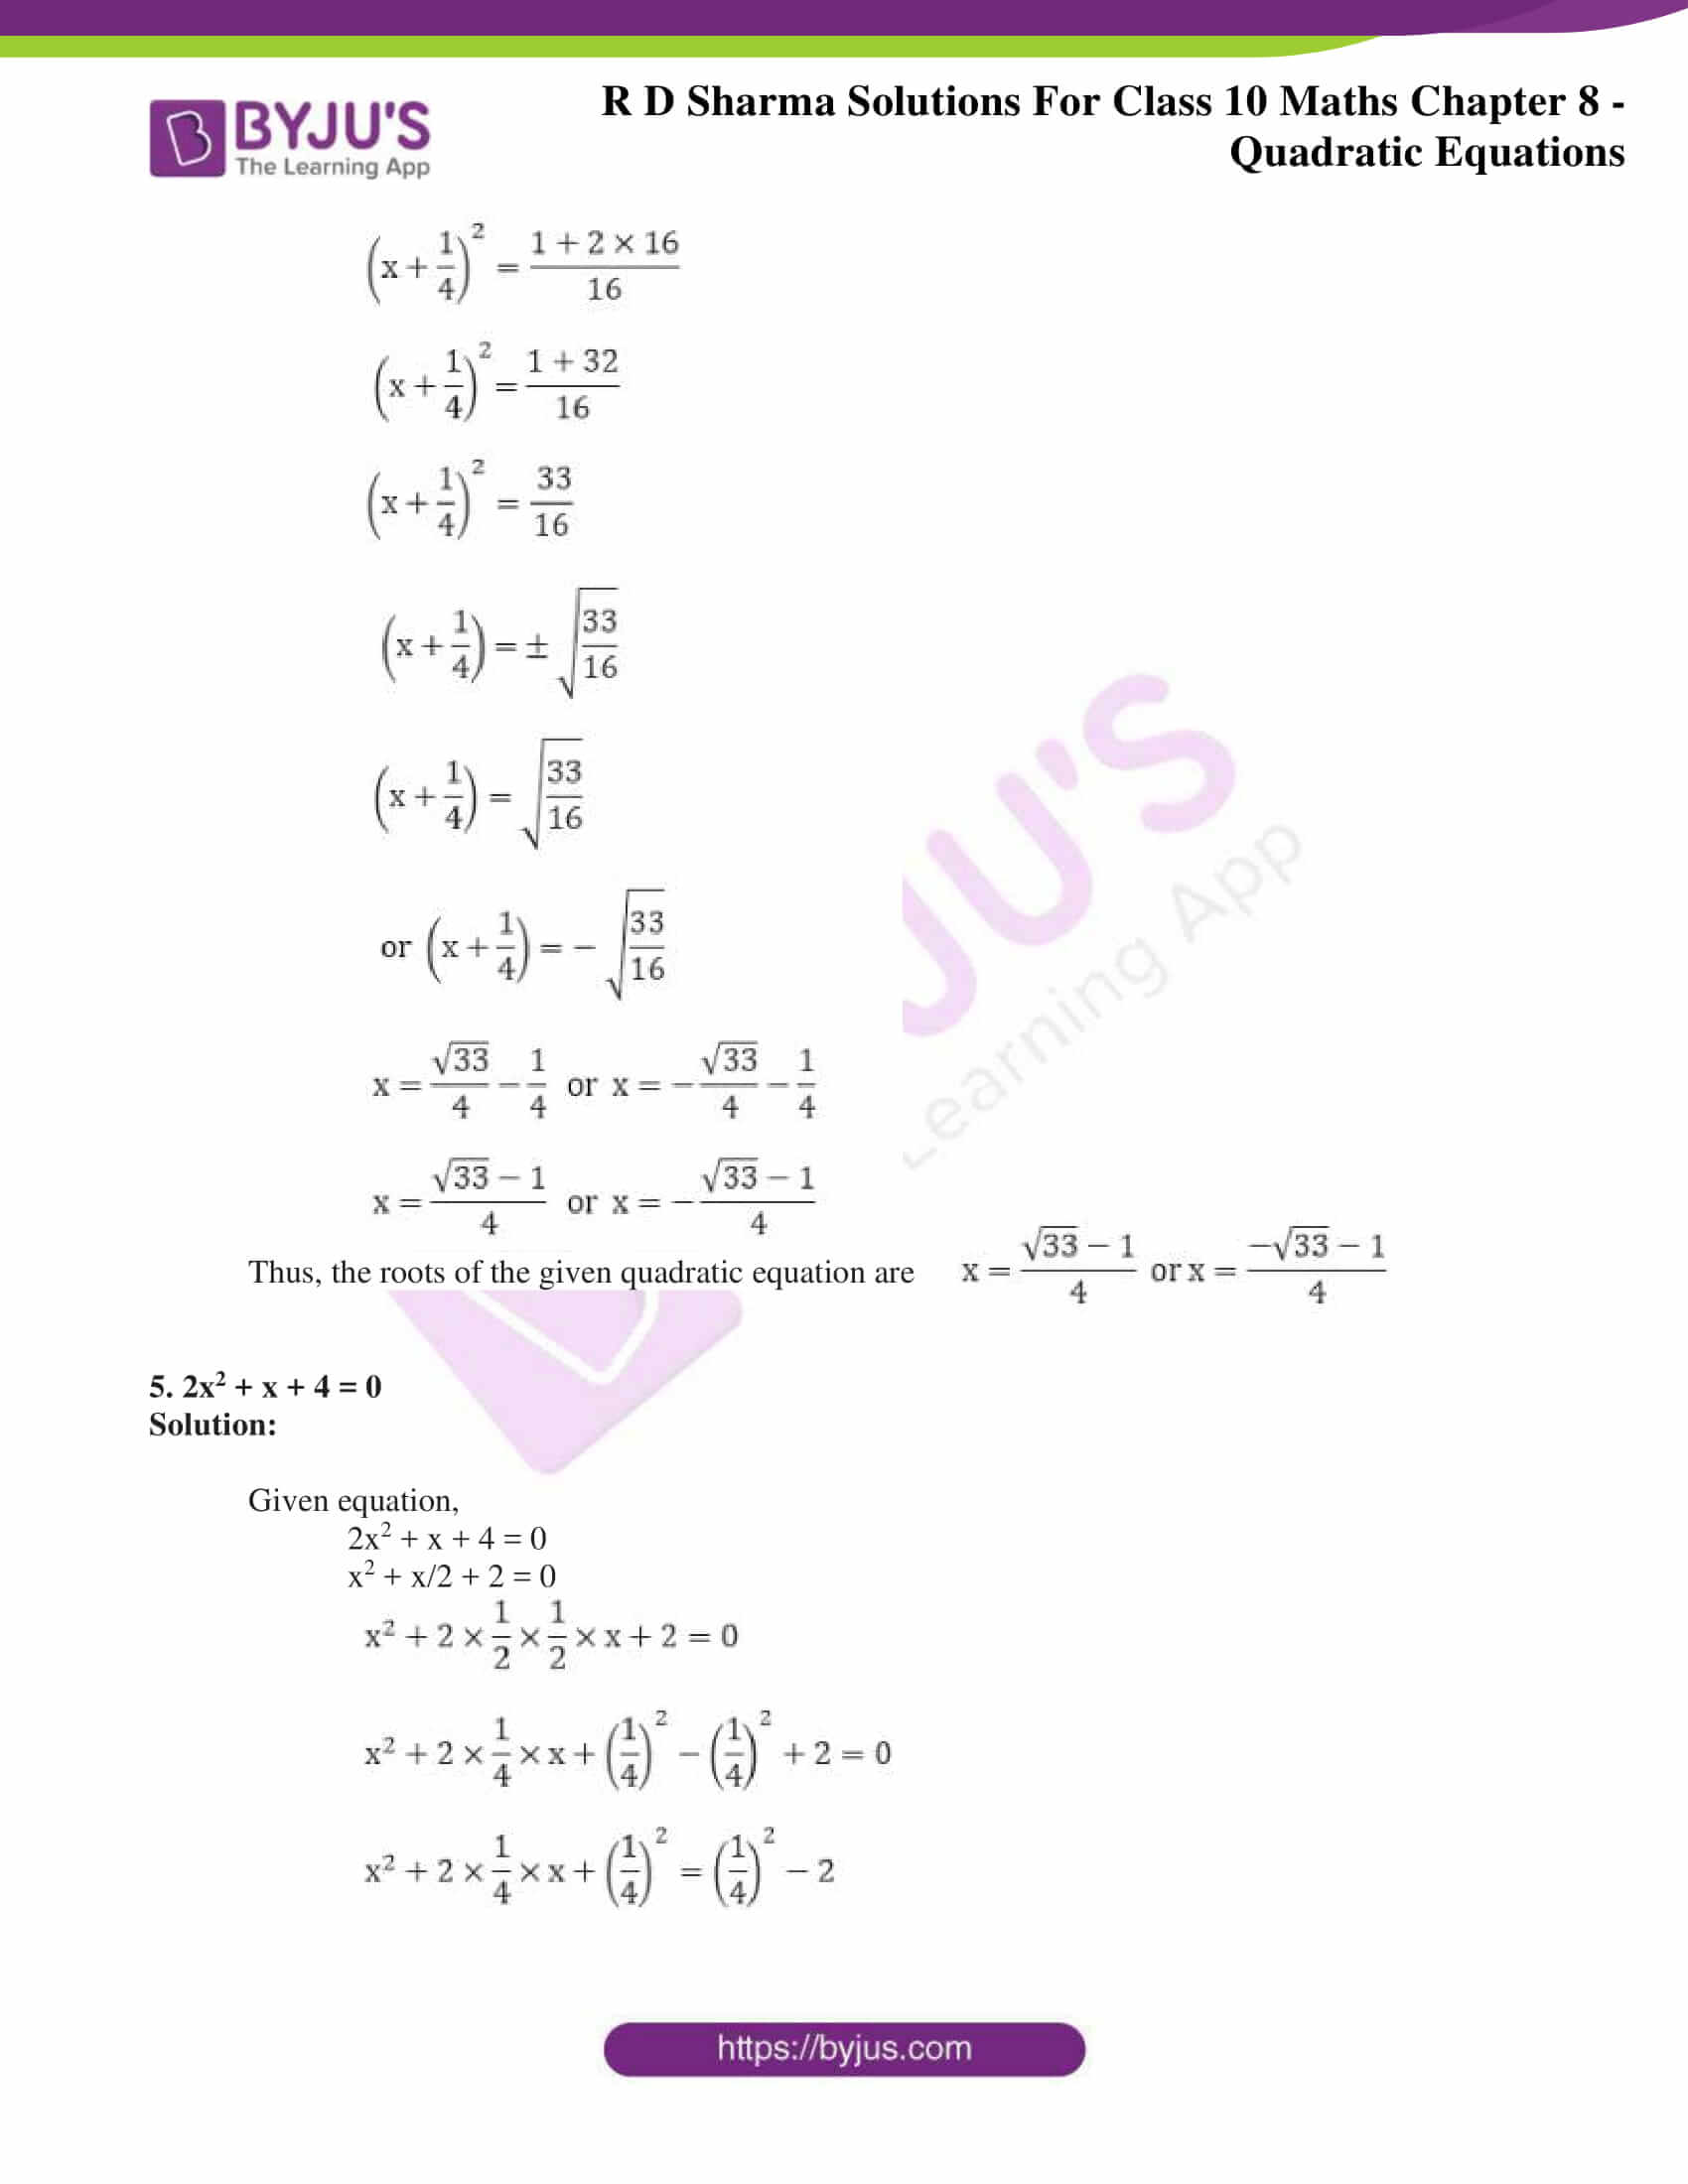 RD Sharma Solutions for Class 10 Chapter 8 Quadratic Equations 27